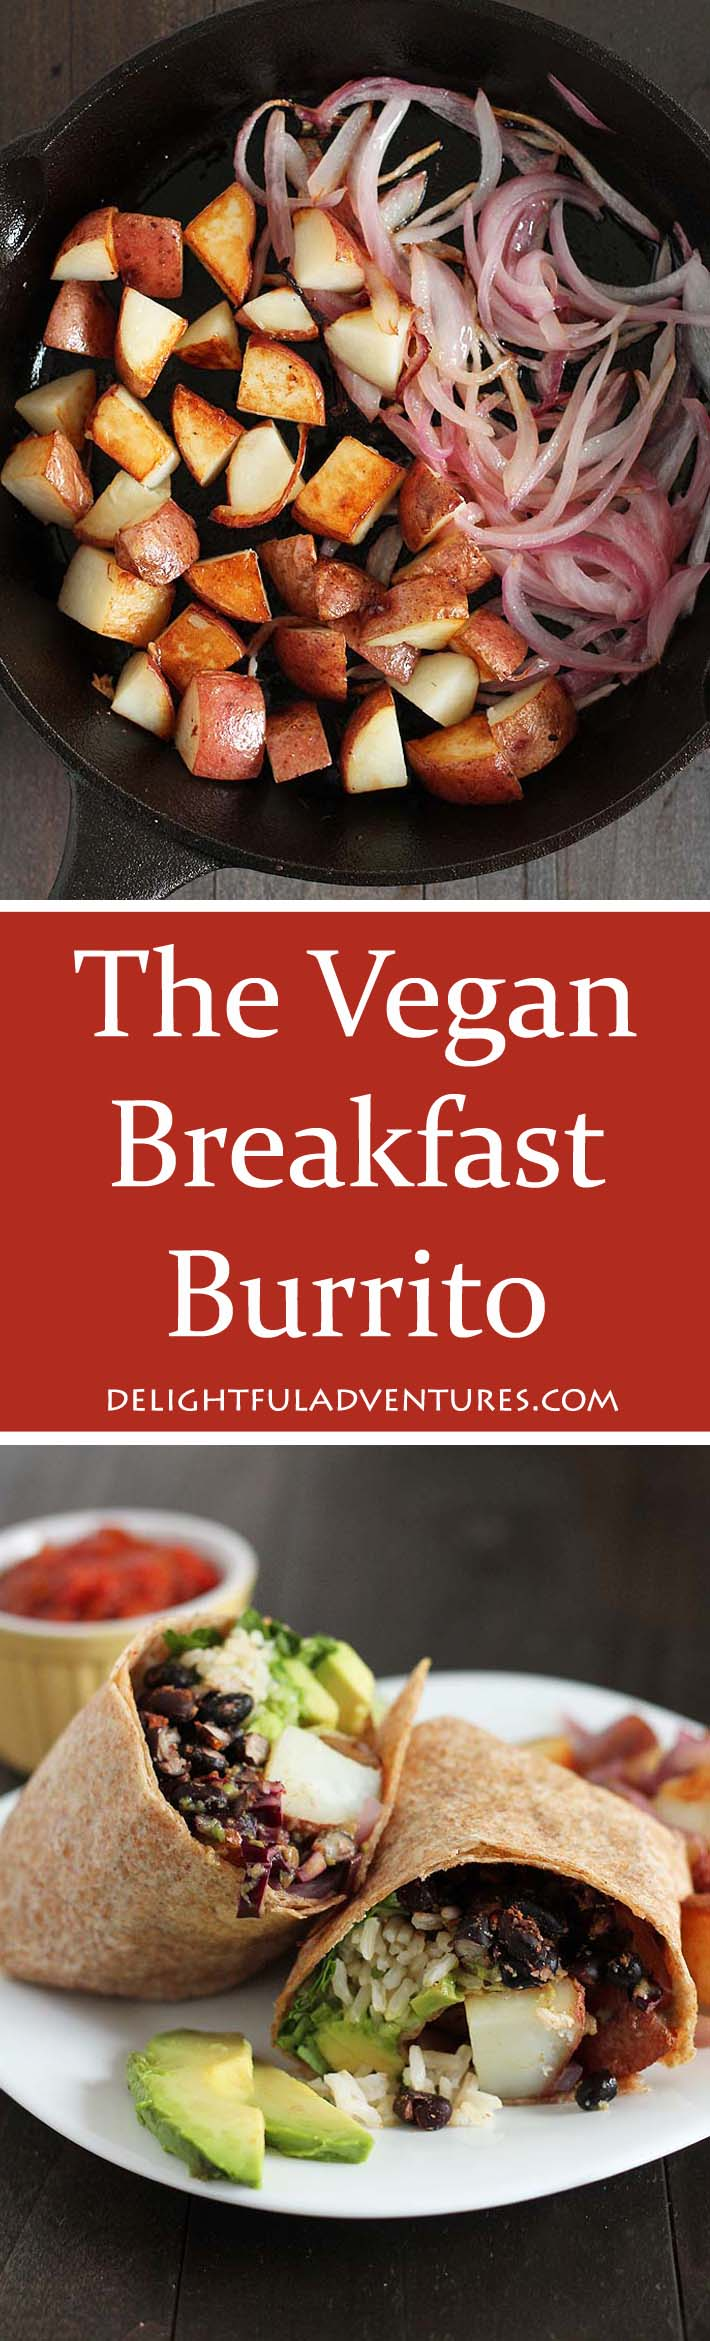 Burritos aren't only for lunch and supper, have them for breakfast too! This vegan breakfast burrito recipe is loaded with filling ingredients and will become a new favourite!